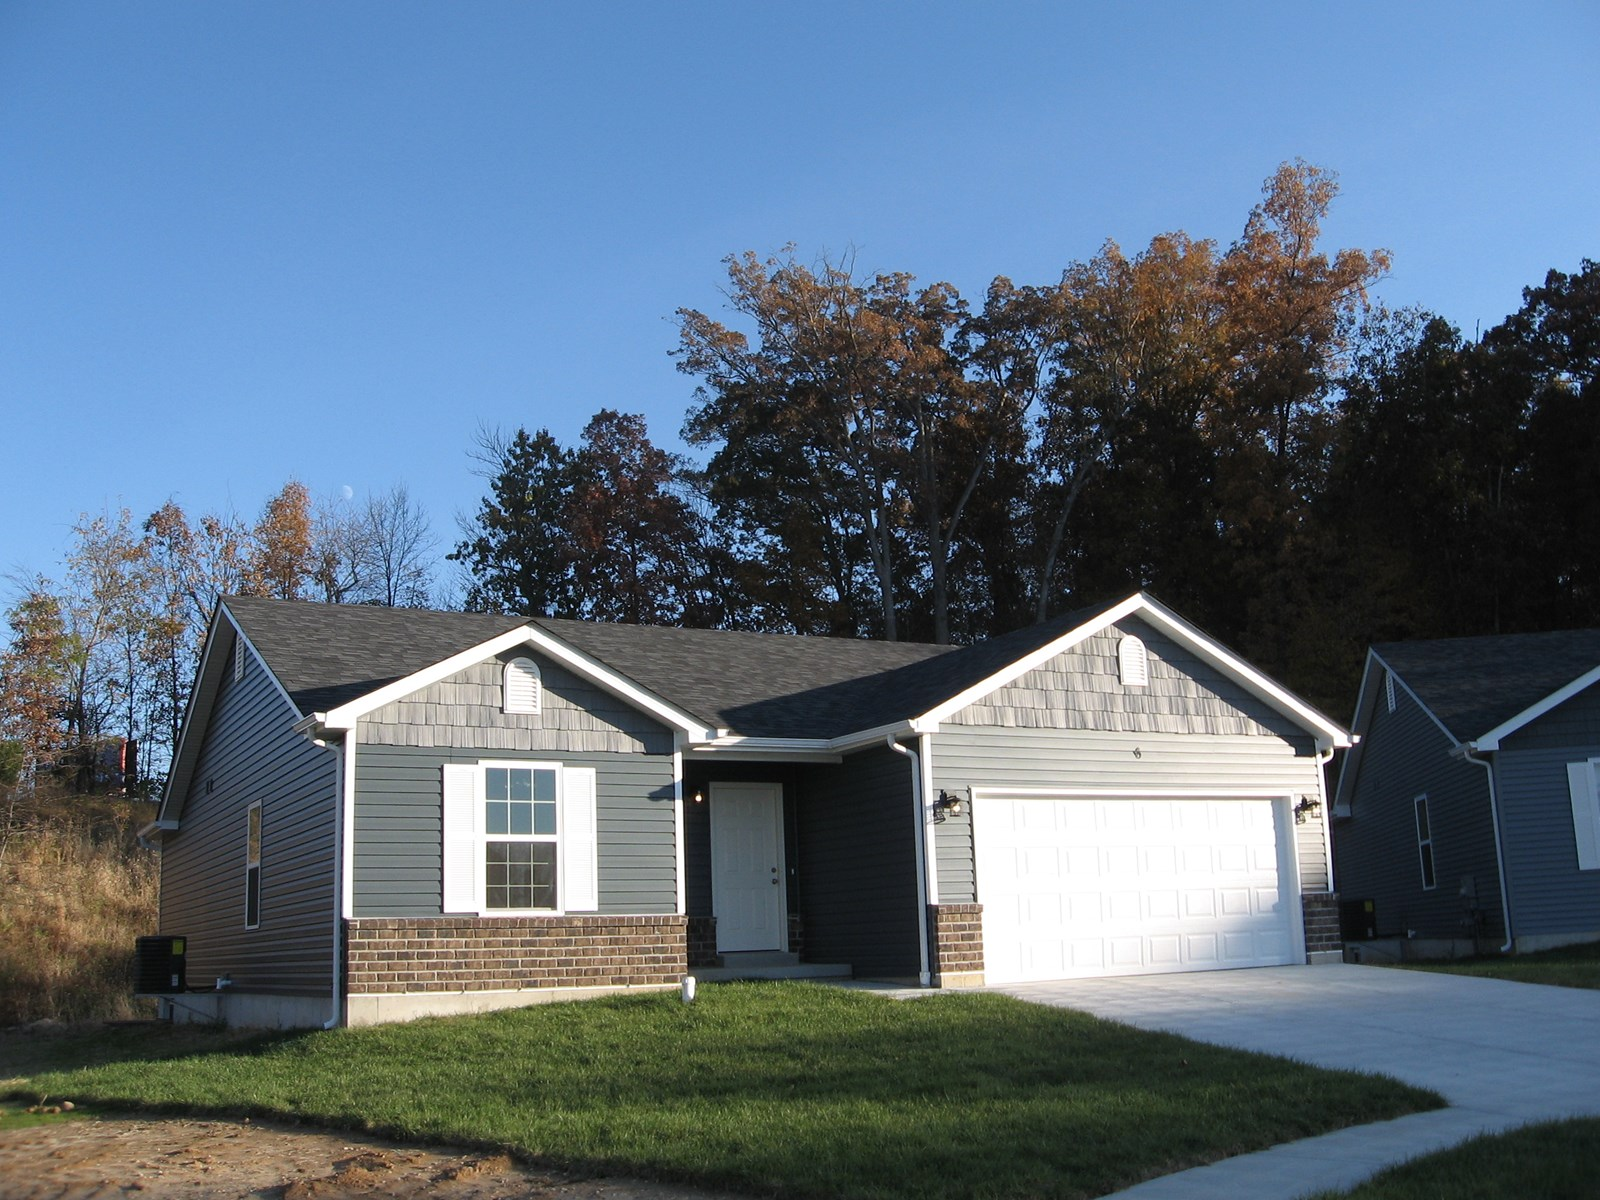 NEW CONSTRUCTION WITH IMMEDIATE POSSESSION: